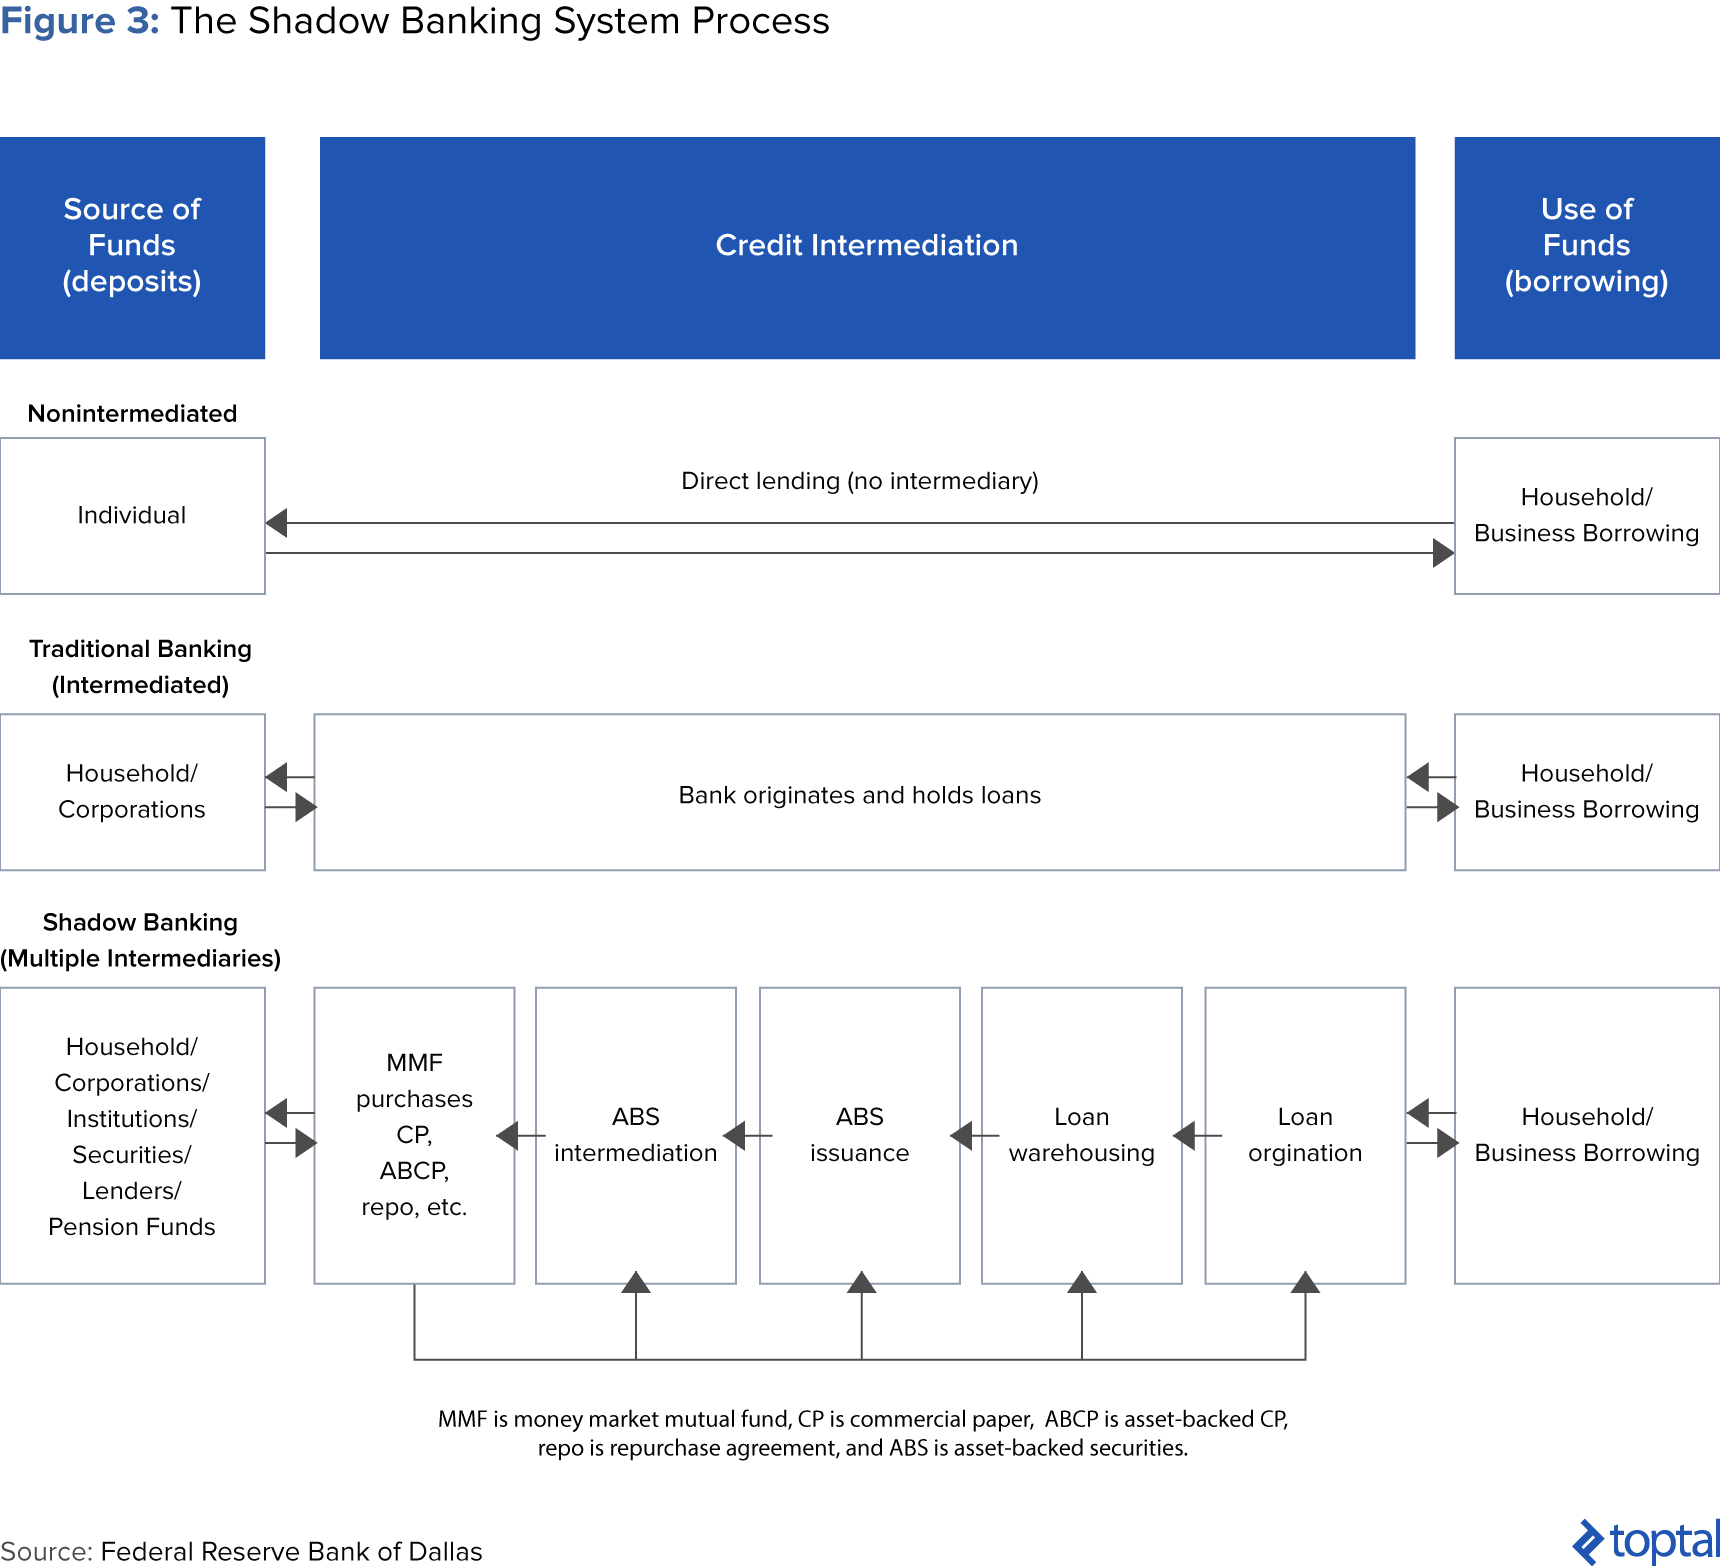 Figure 3: The Shadow Banking System Process